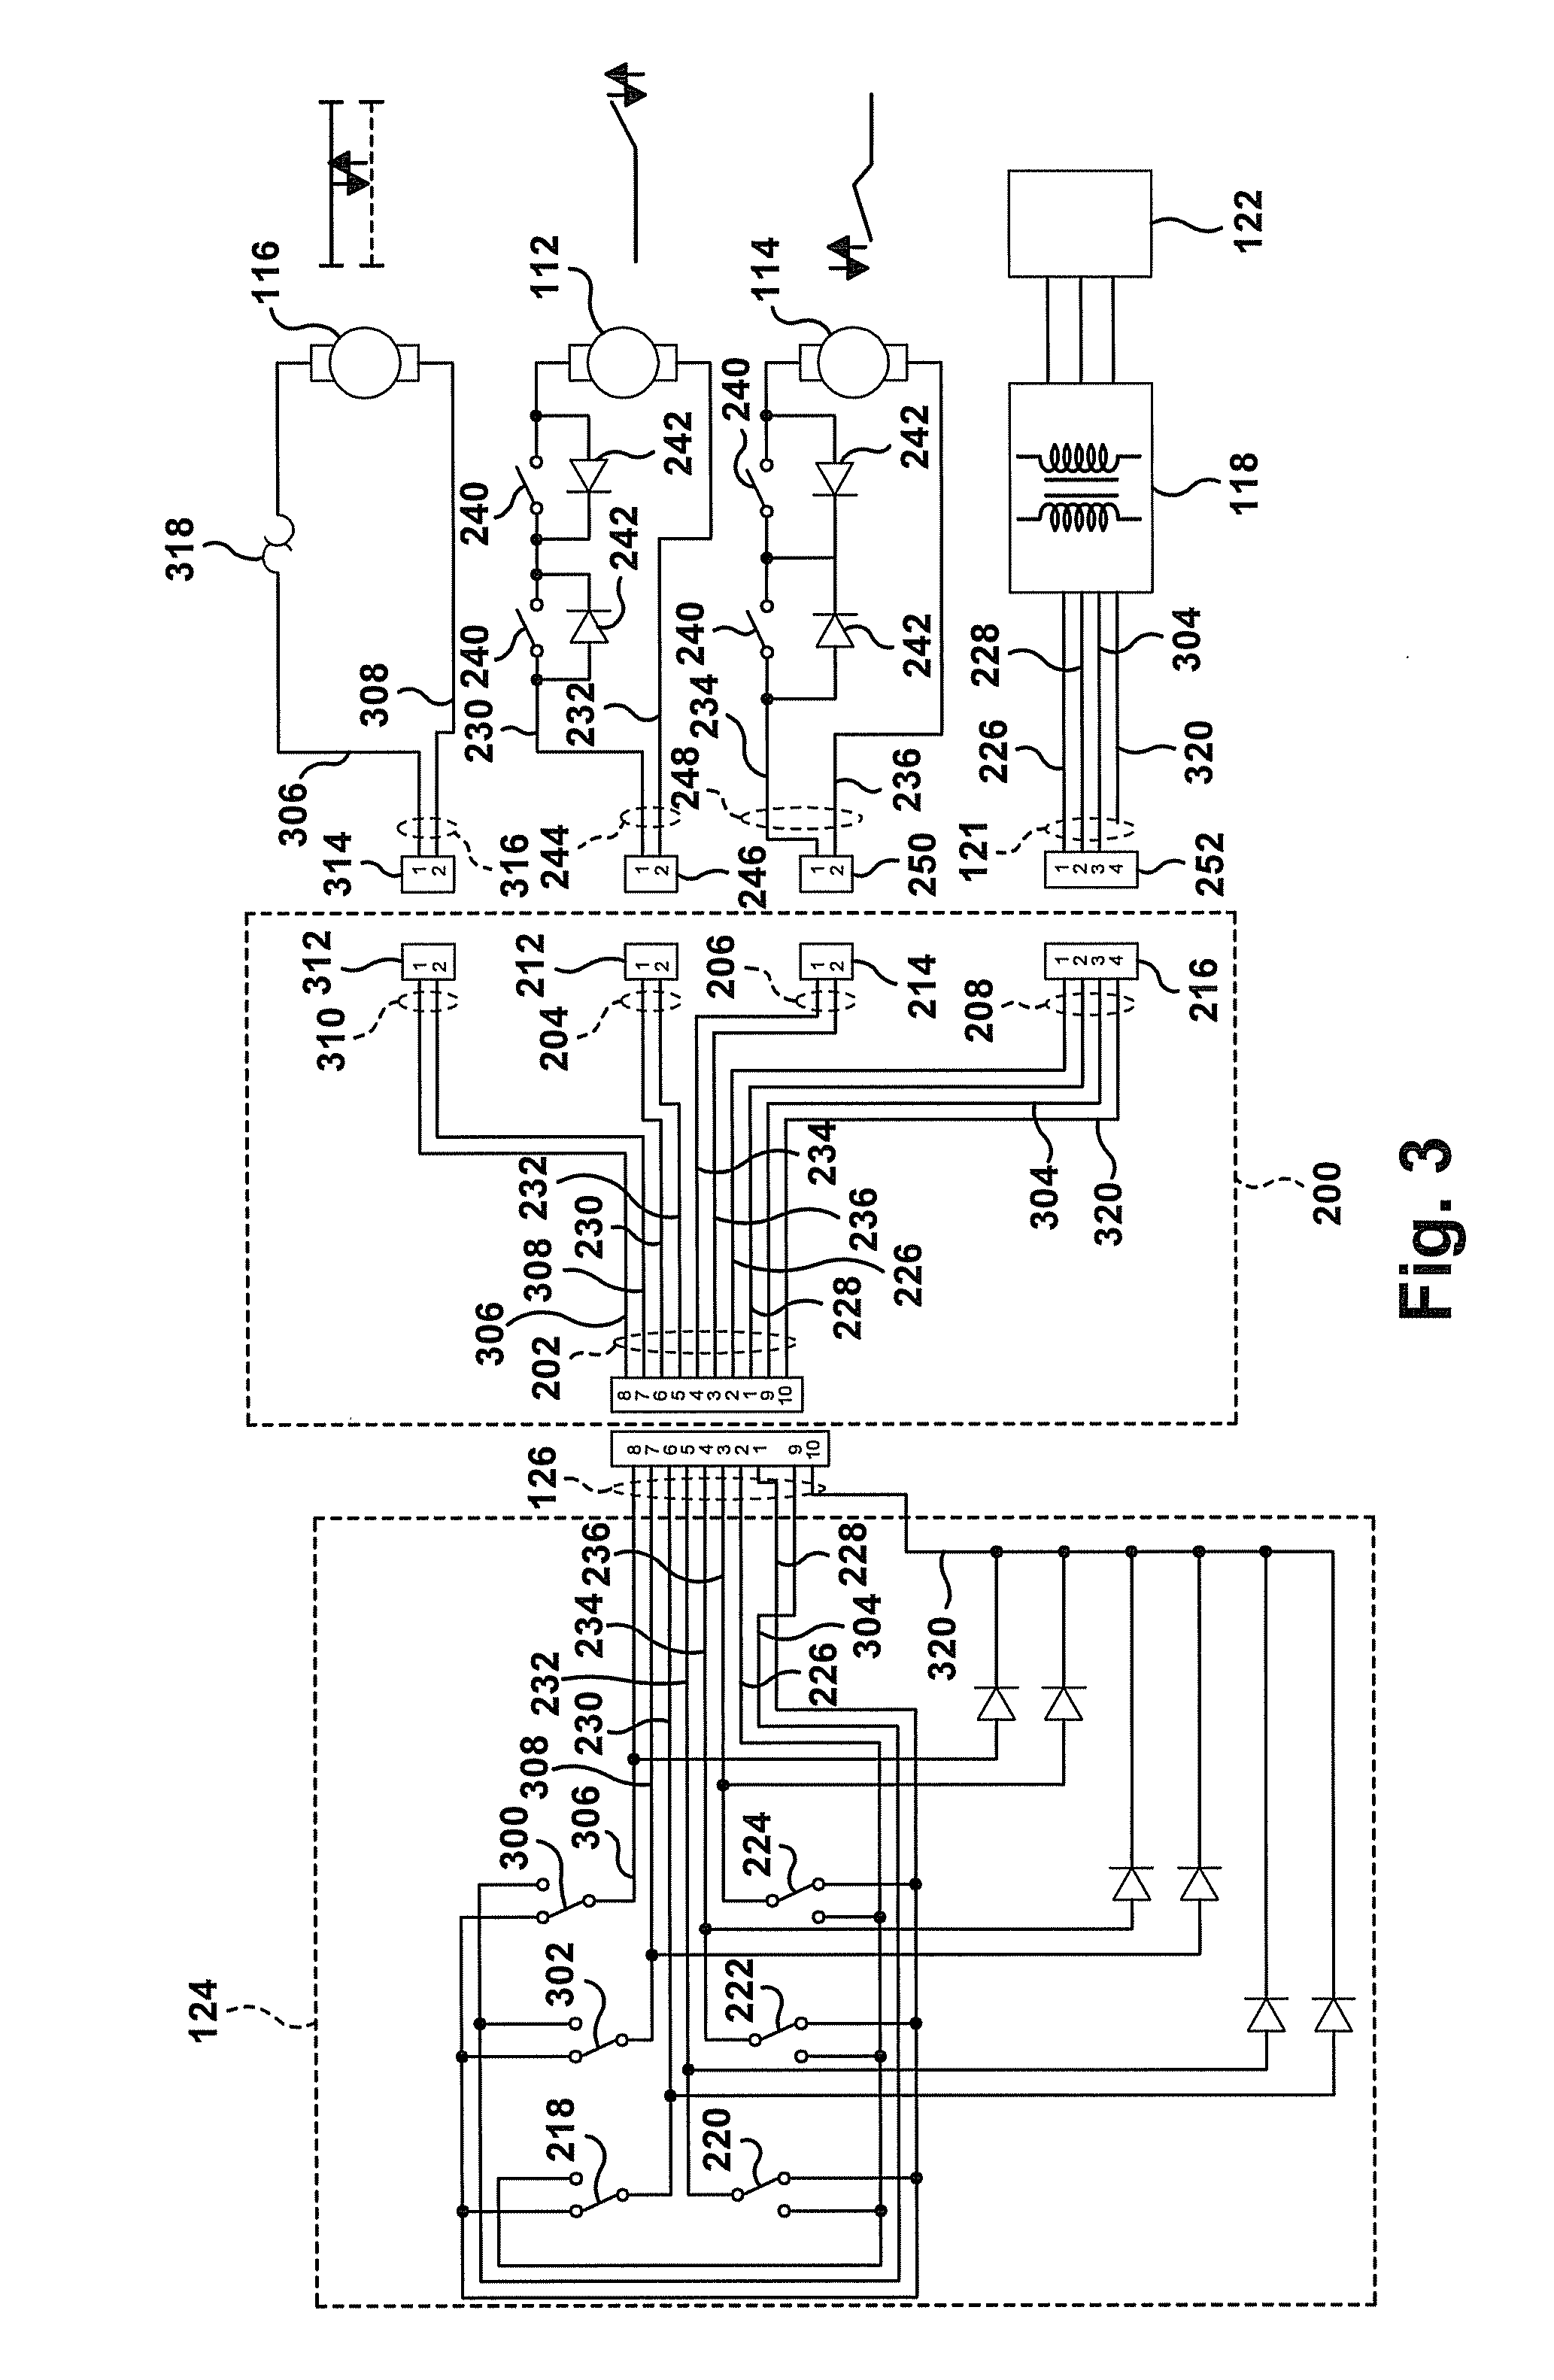 ac coupled wiring diagram with Us20120005828 on US6909263 as well For Ac   Meter Wiring Diagram moreover Zener Diode Circuit Diagram Pdf as well Diode Bridge Short Circuit in addition Nand Gate Using Diode.